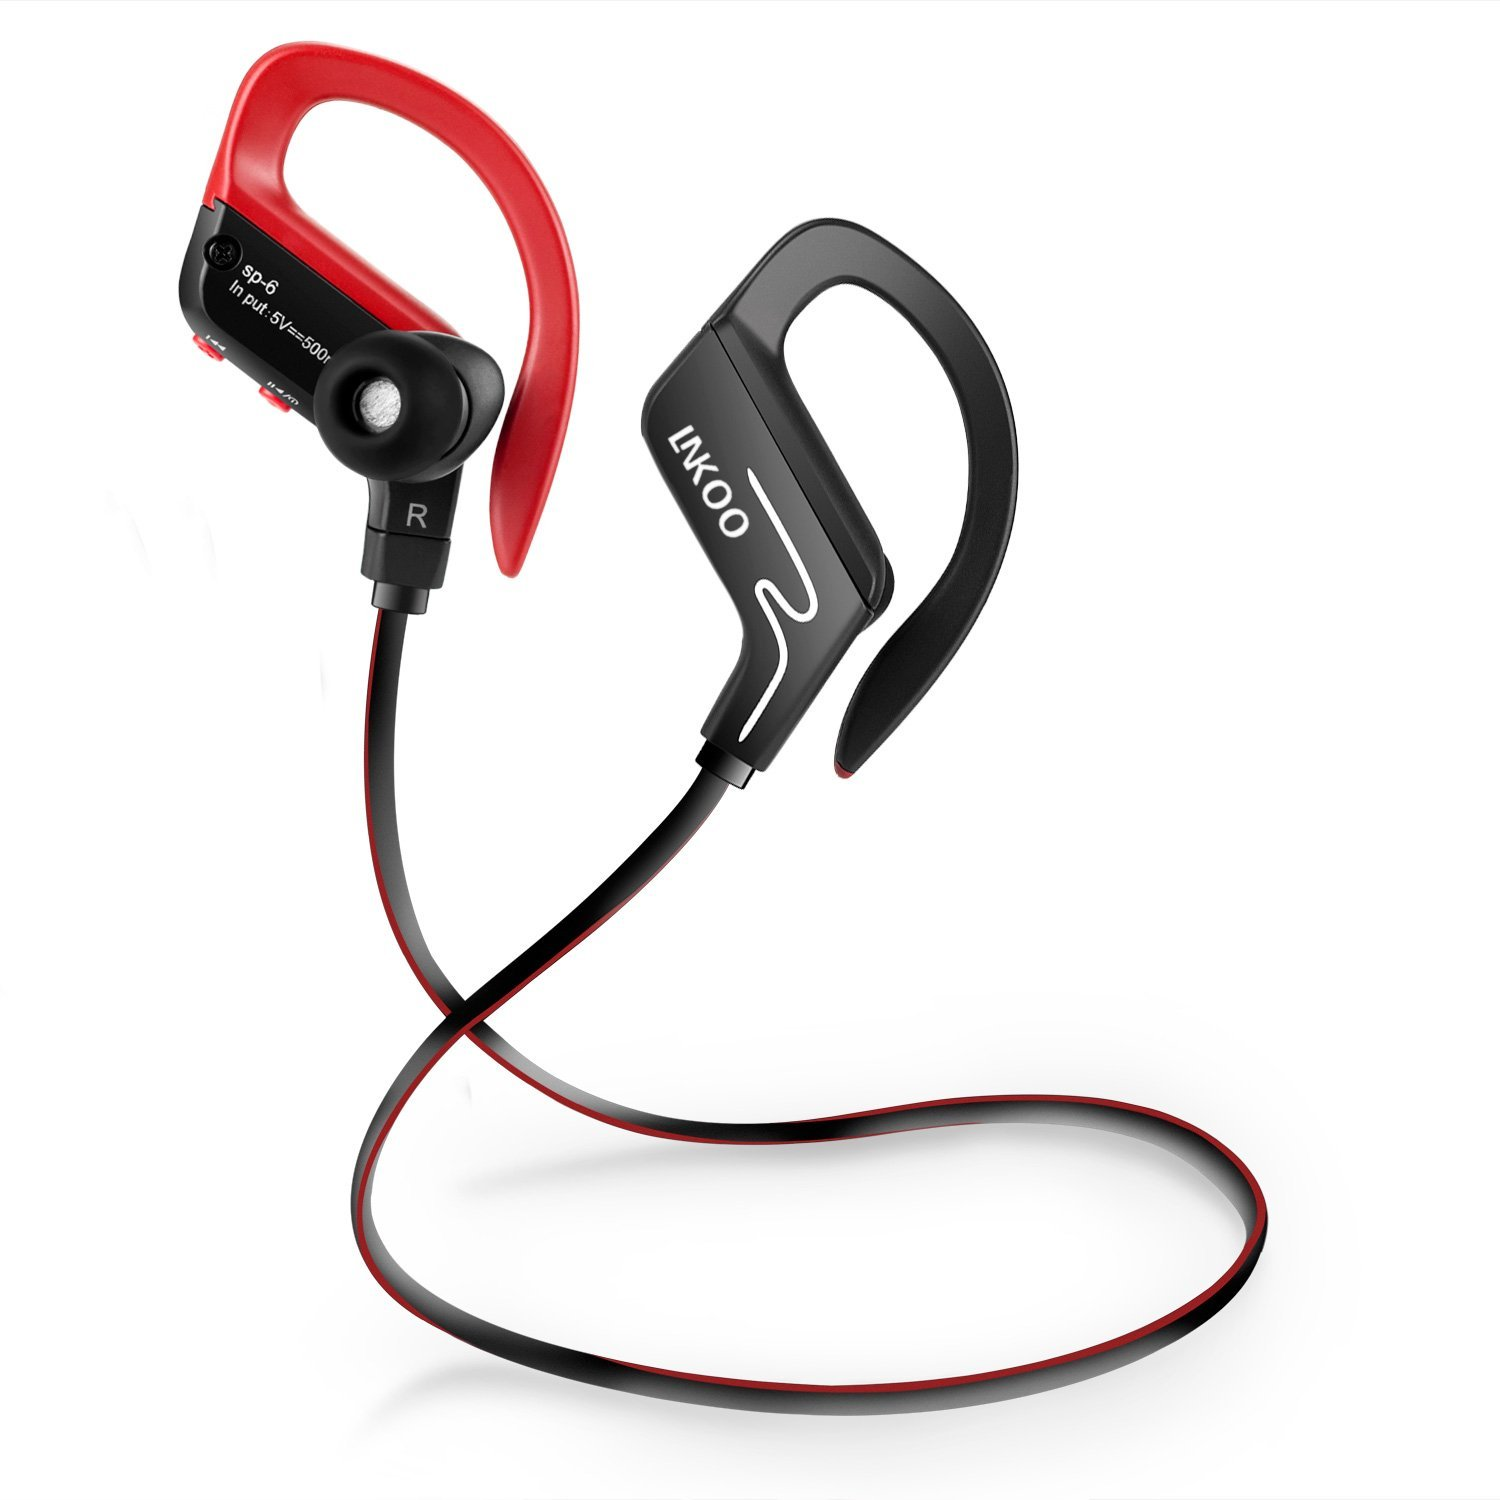 Ipx7 waterproof bluetooth earphone - bluetooth earphones bass